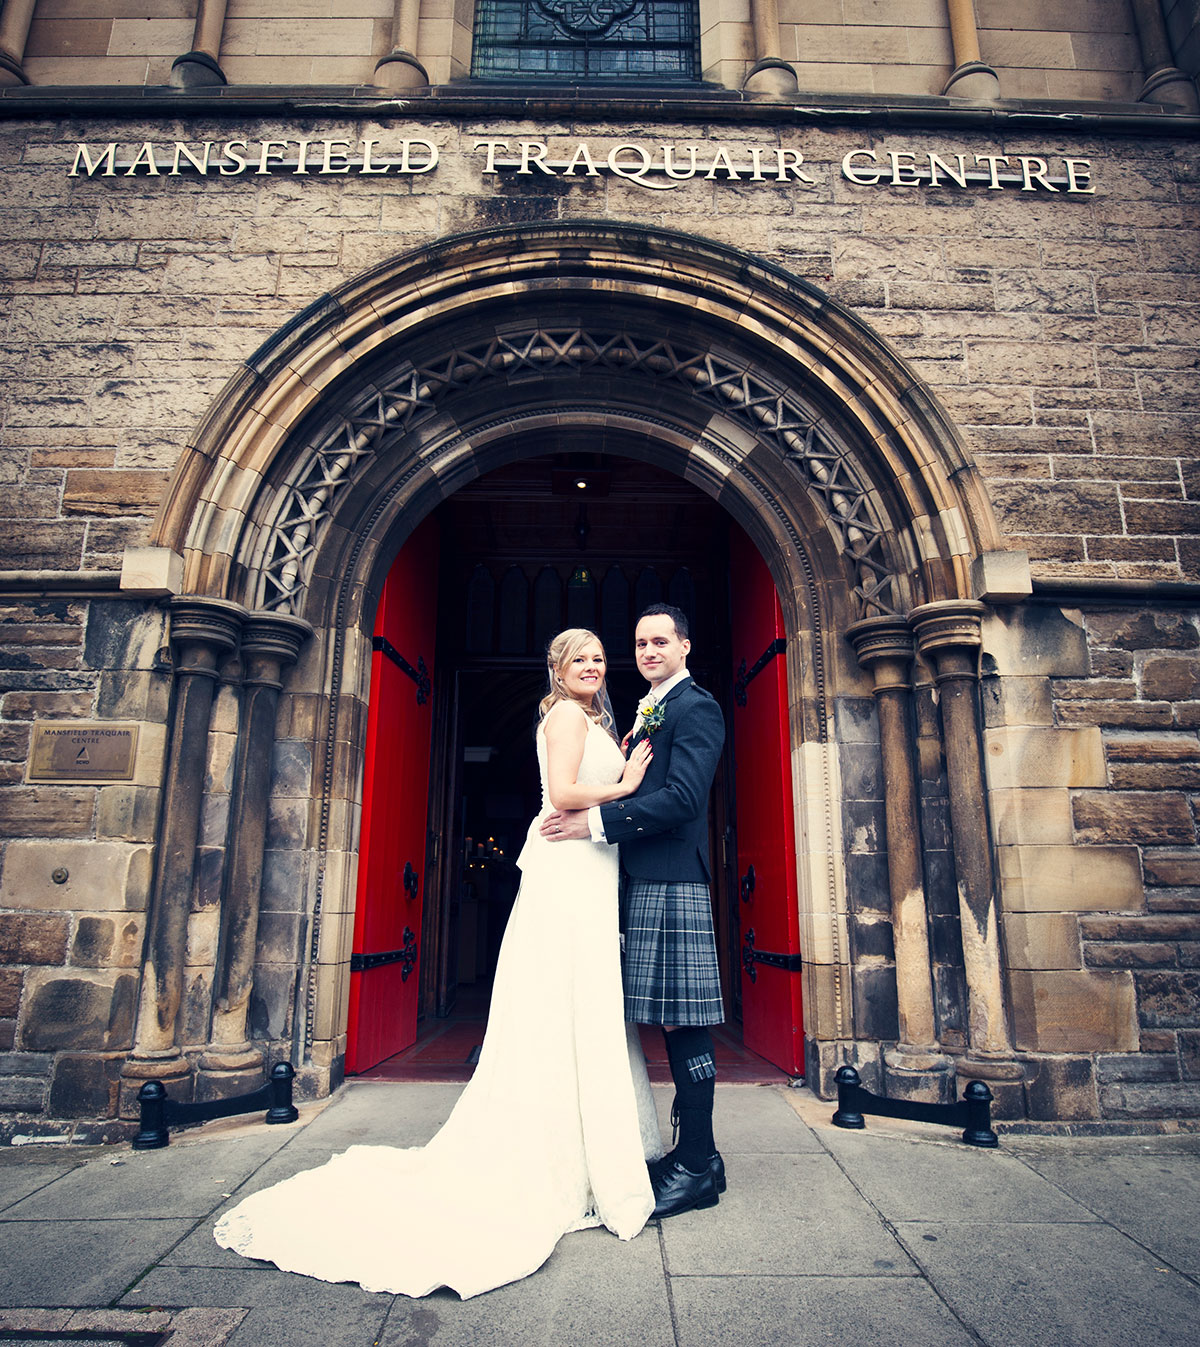 Mansfield Traquair - Plan and style your wedding your way